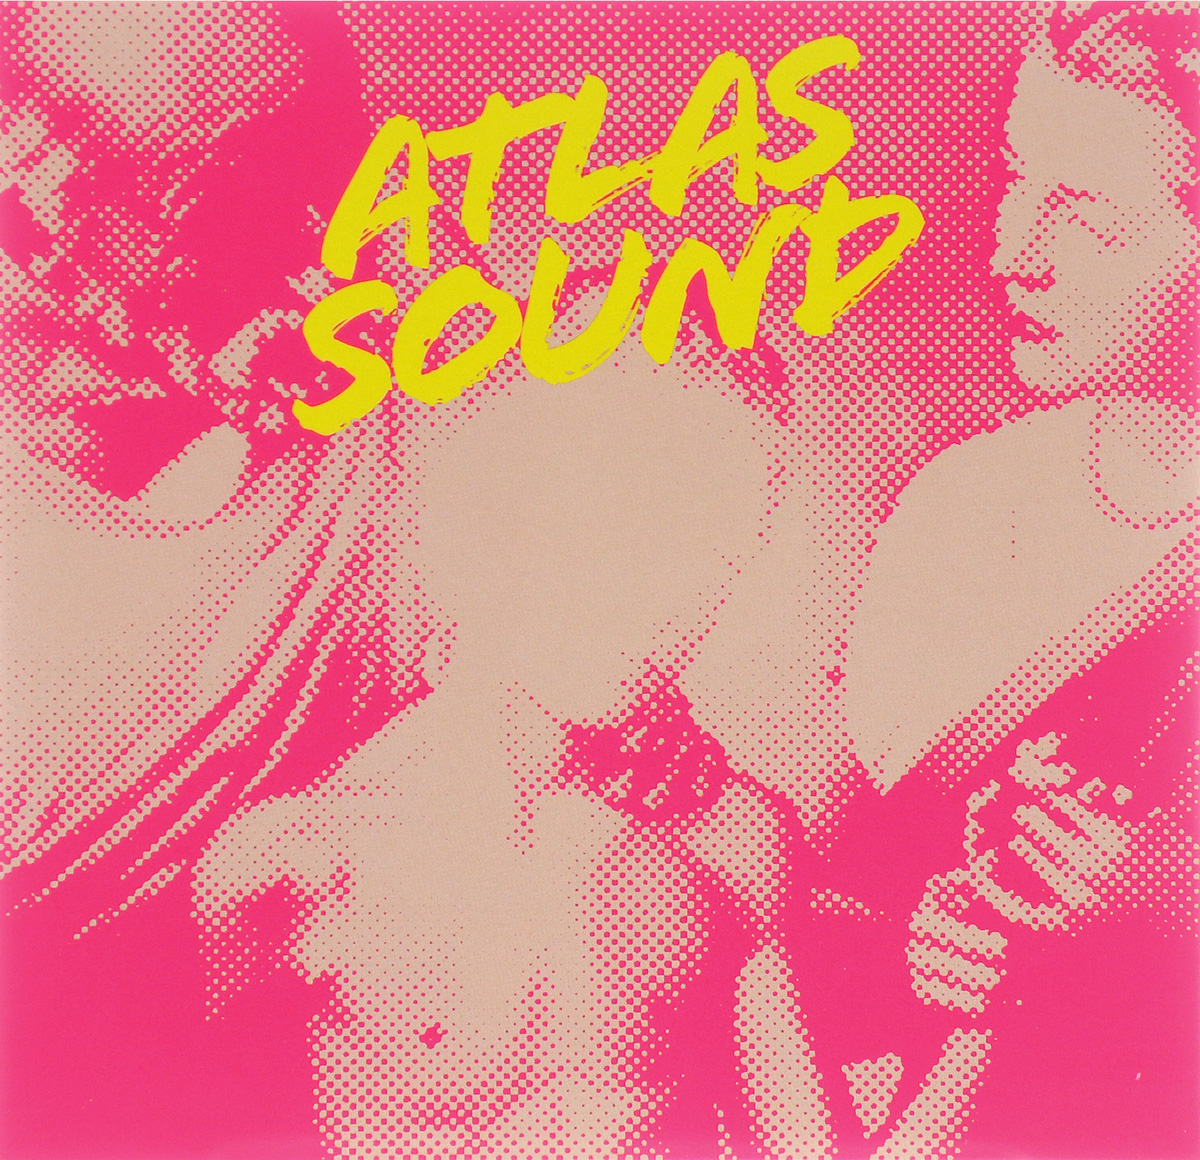 Atlas Sound Atlas Sound. Let The Blind Lead Those Who See But Cannot Feel (2 CD)